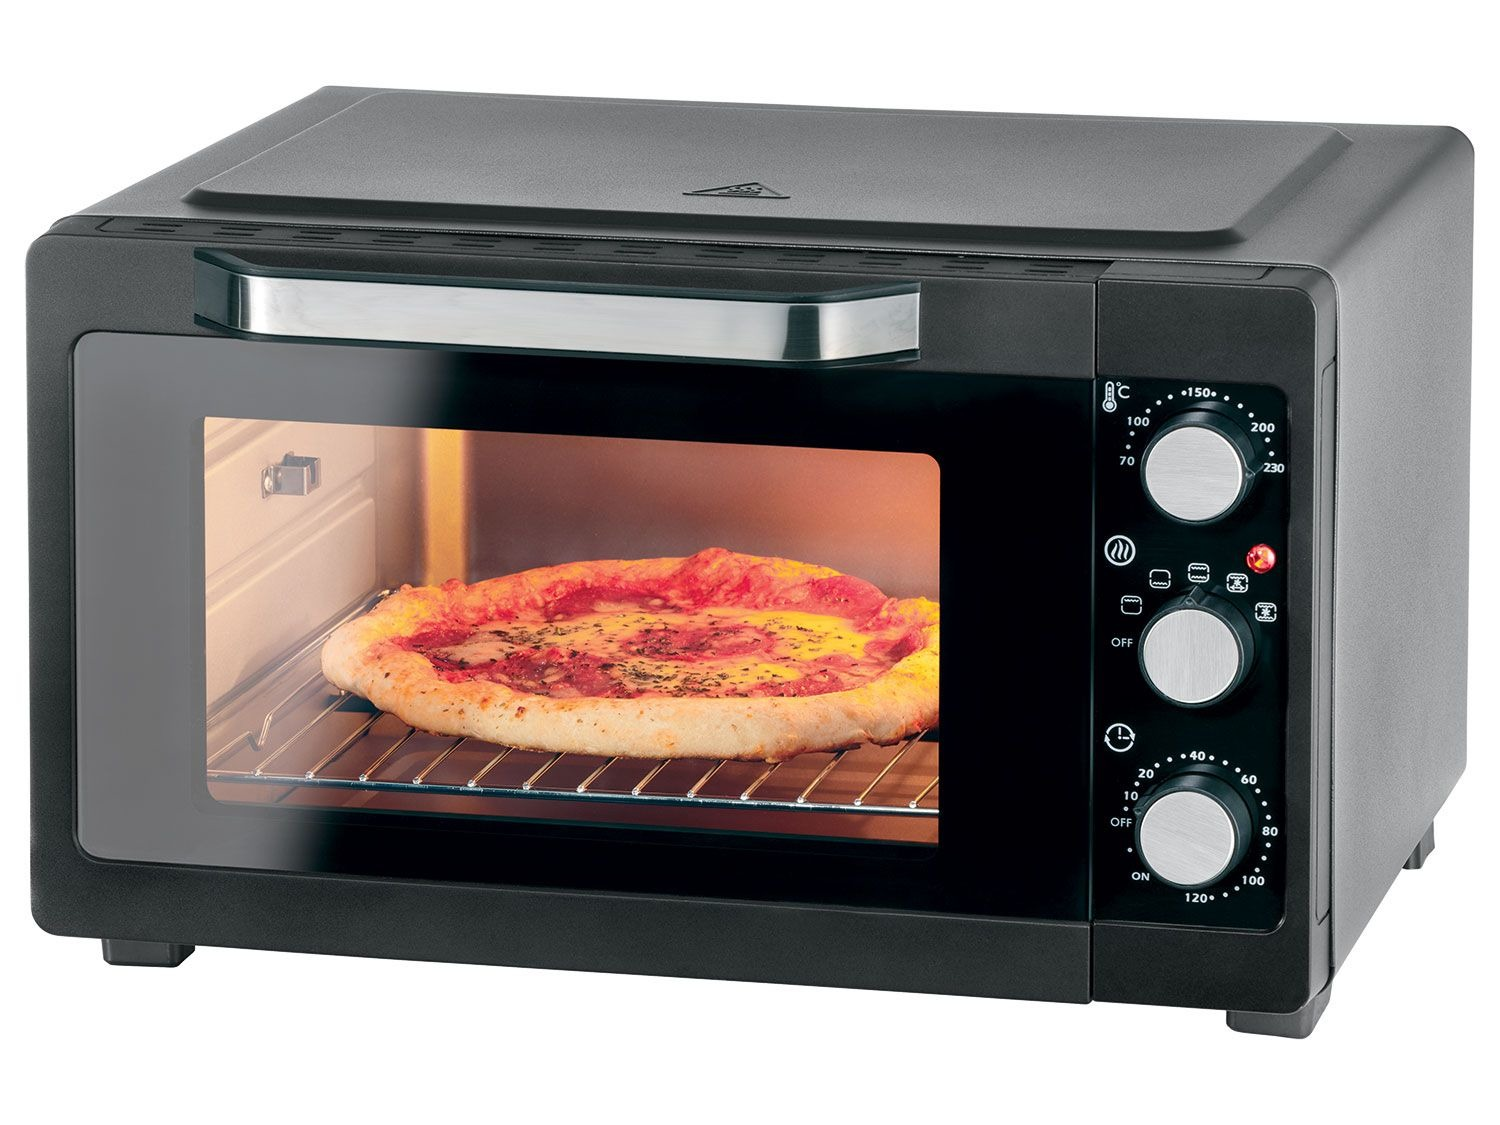 Grill bakautomaat oven Lidl